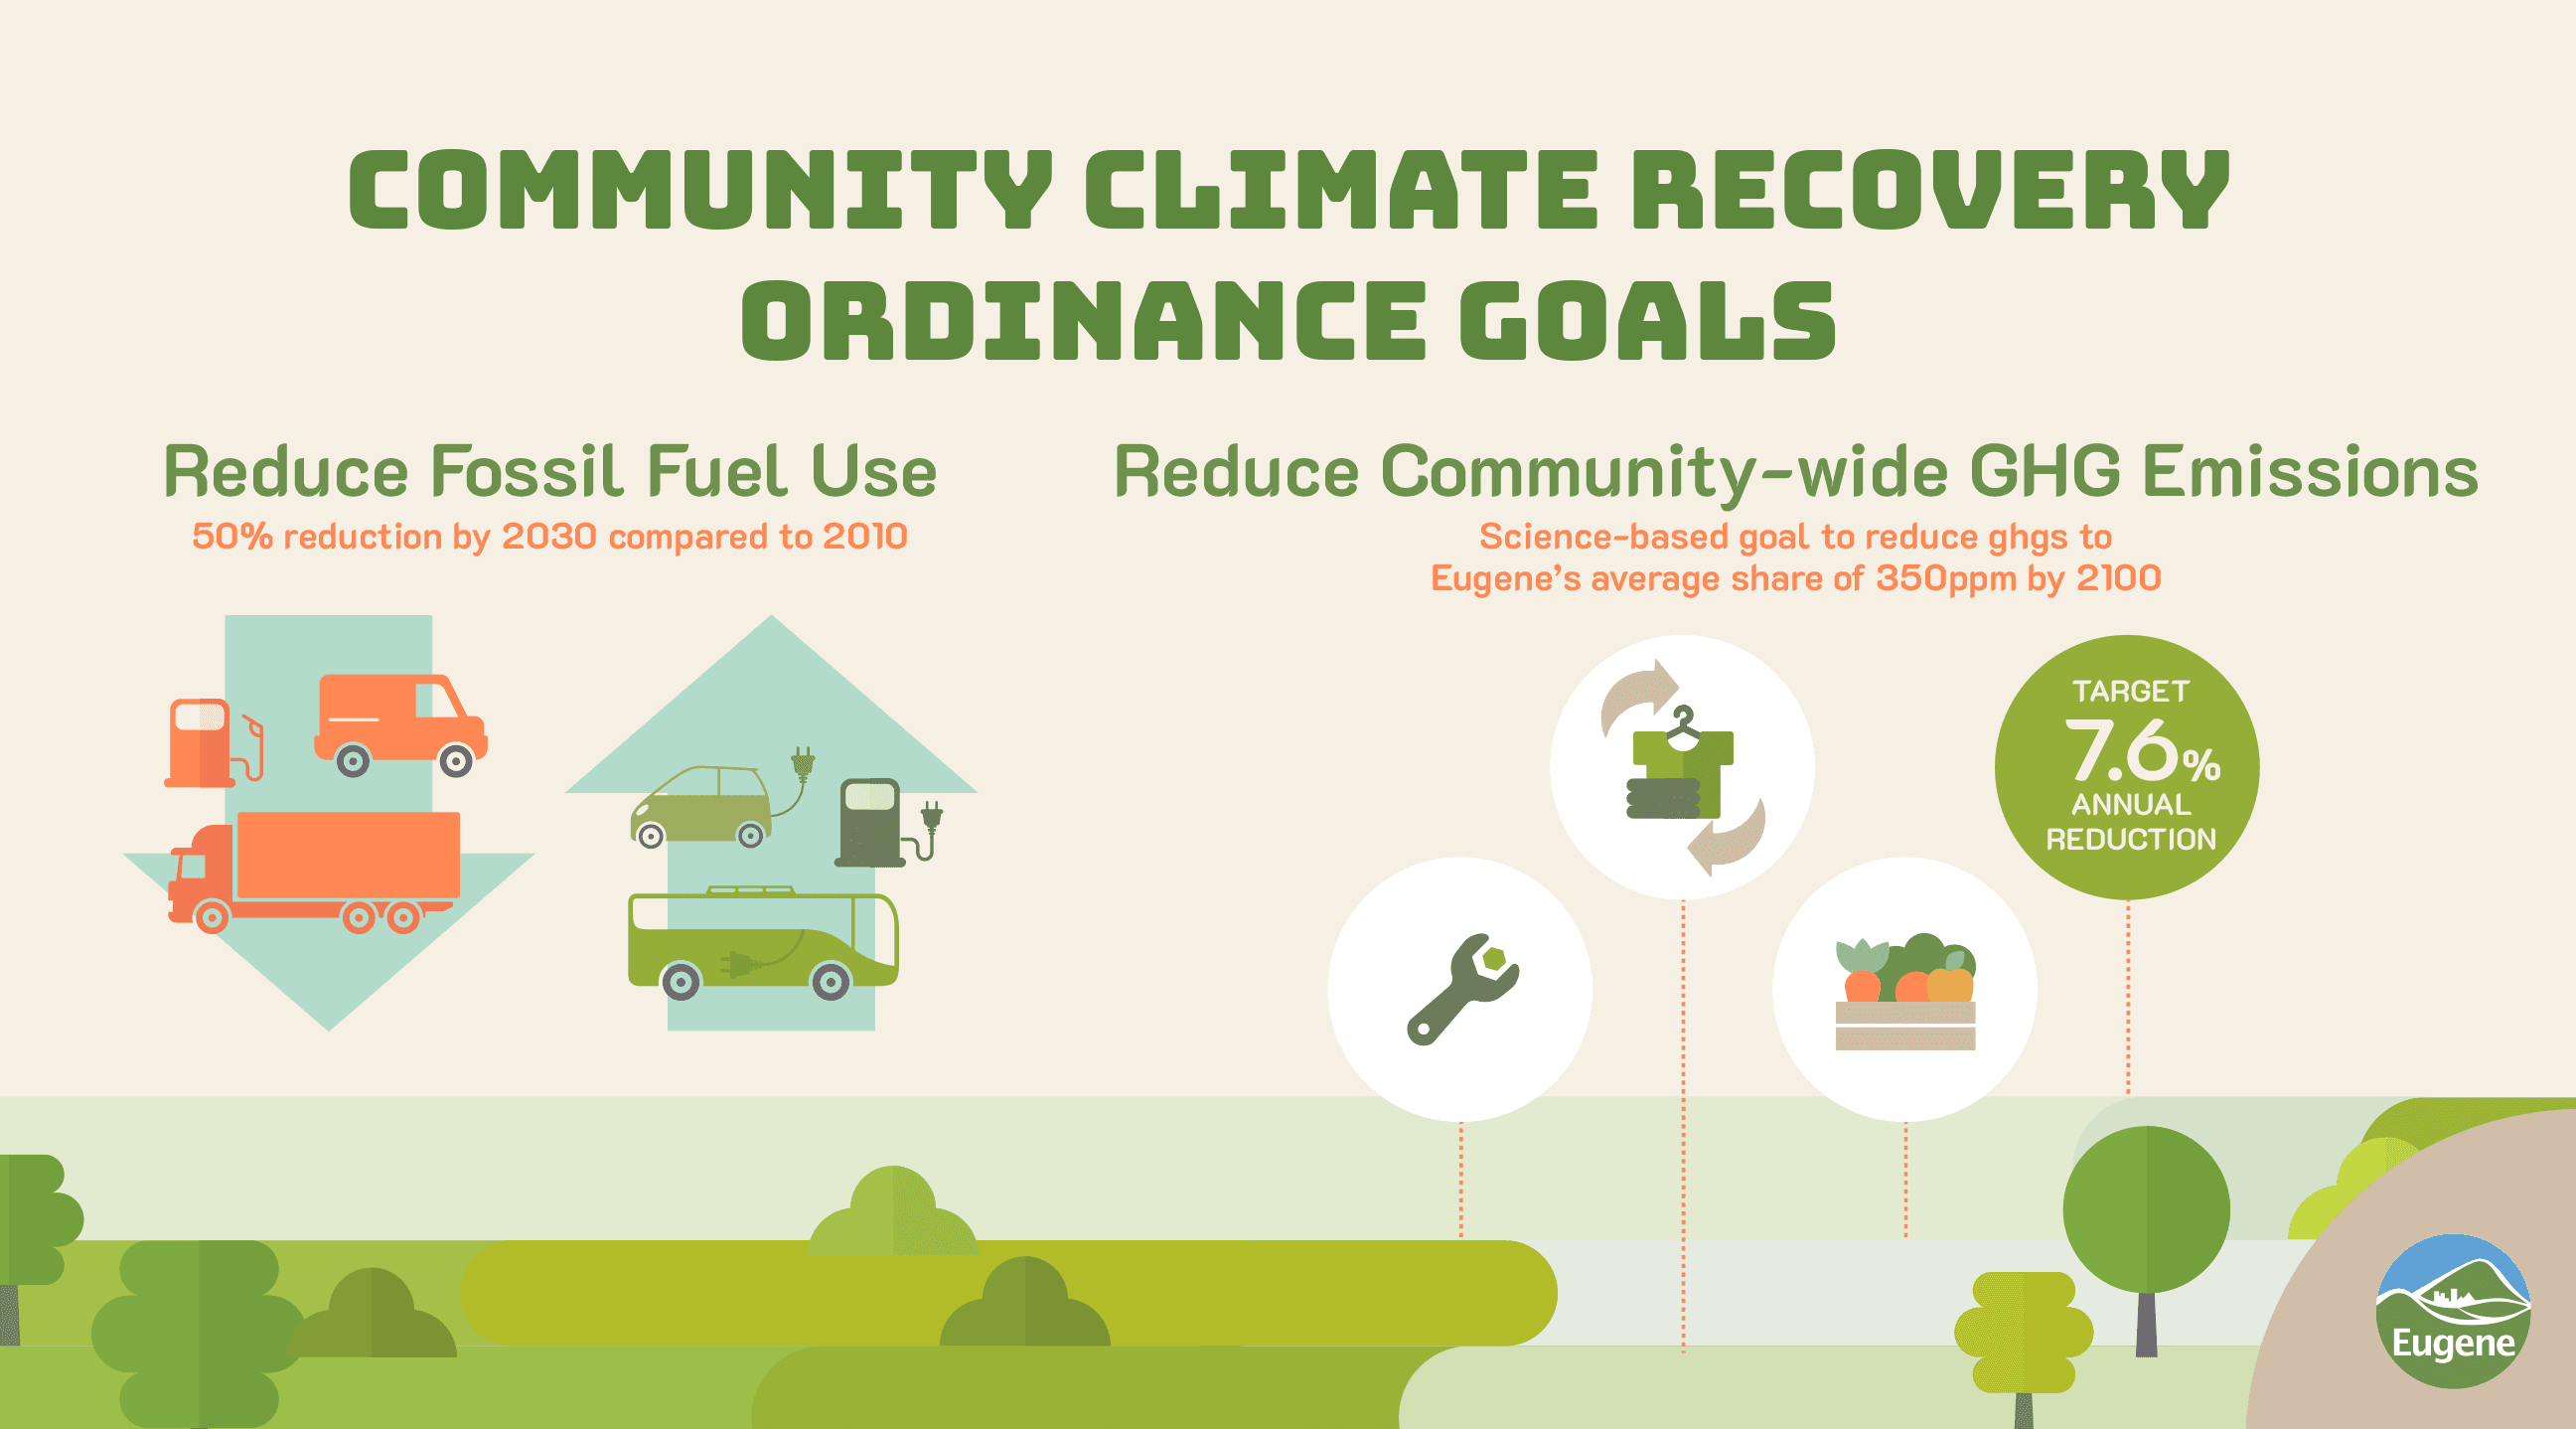 Community Climate Recovery Ordinance Goals